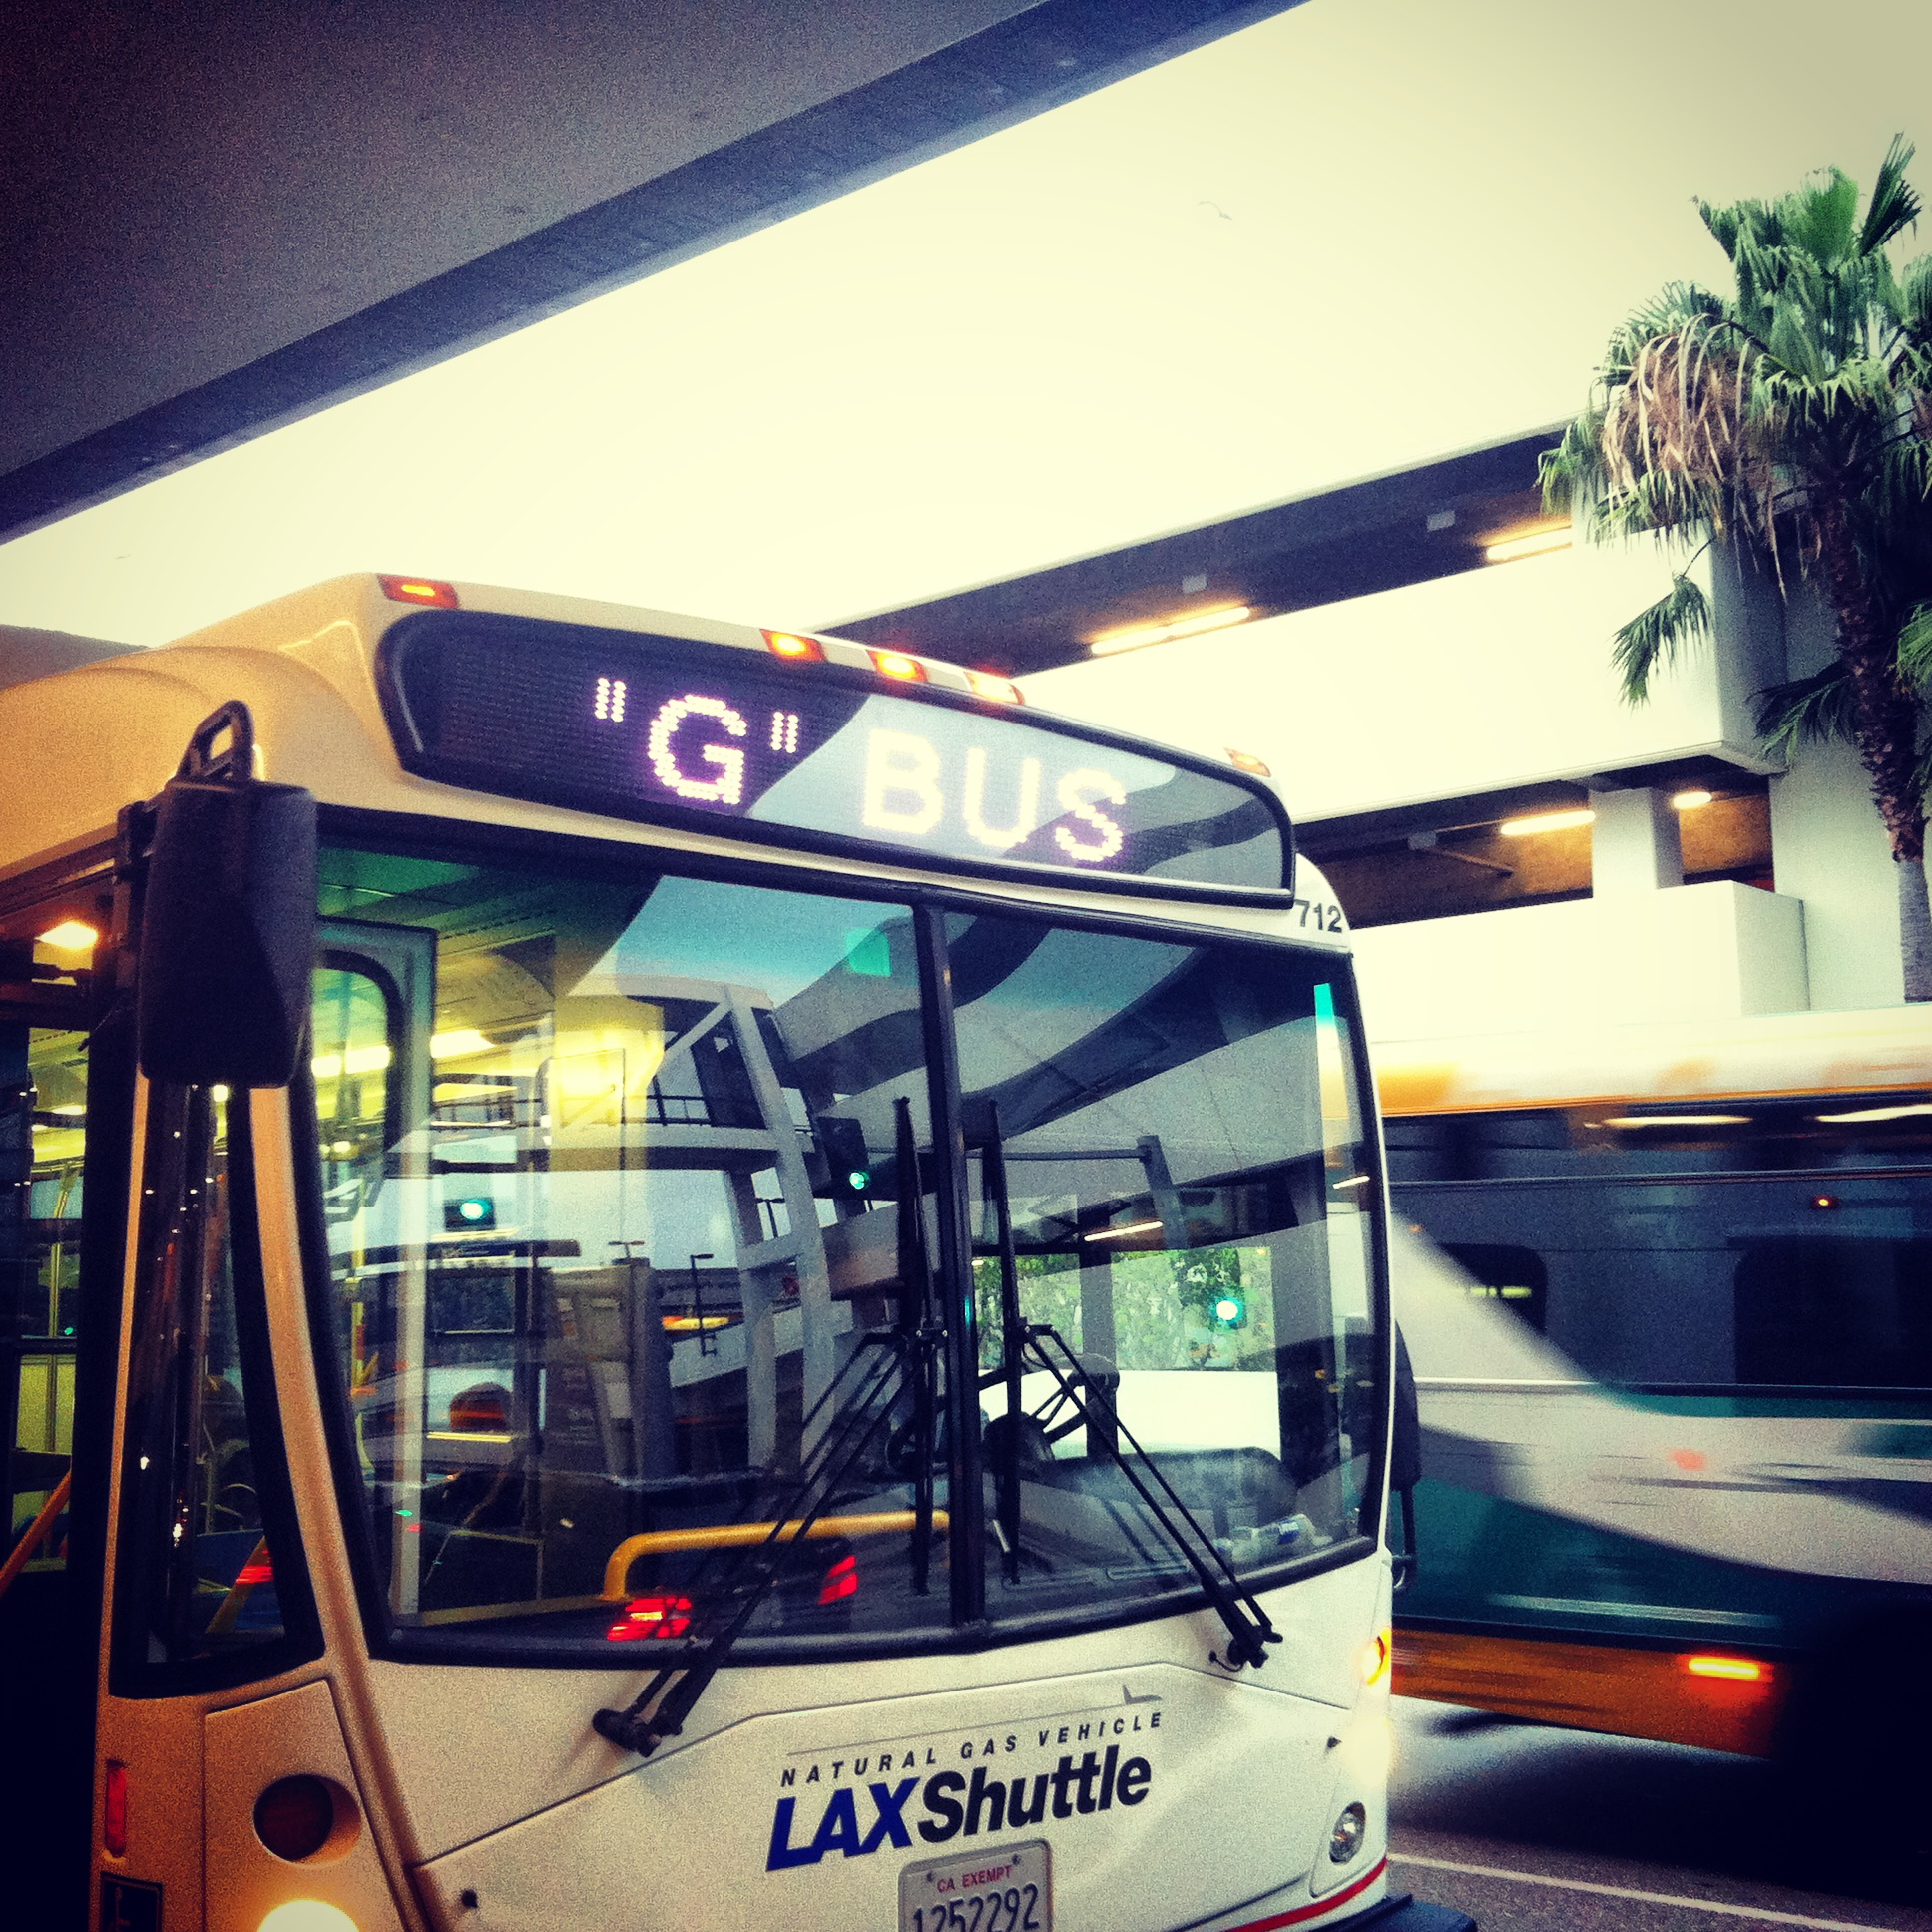 The G Bus - LA Public Transit